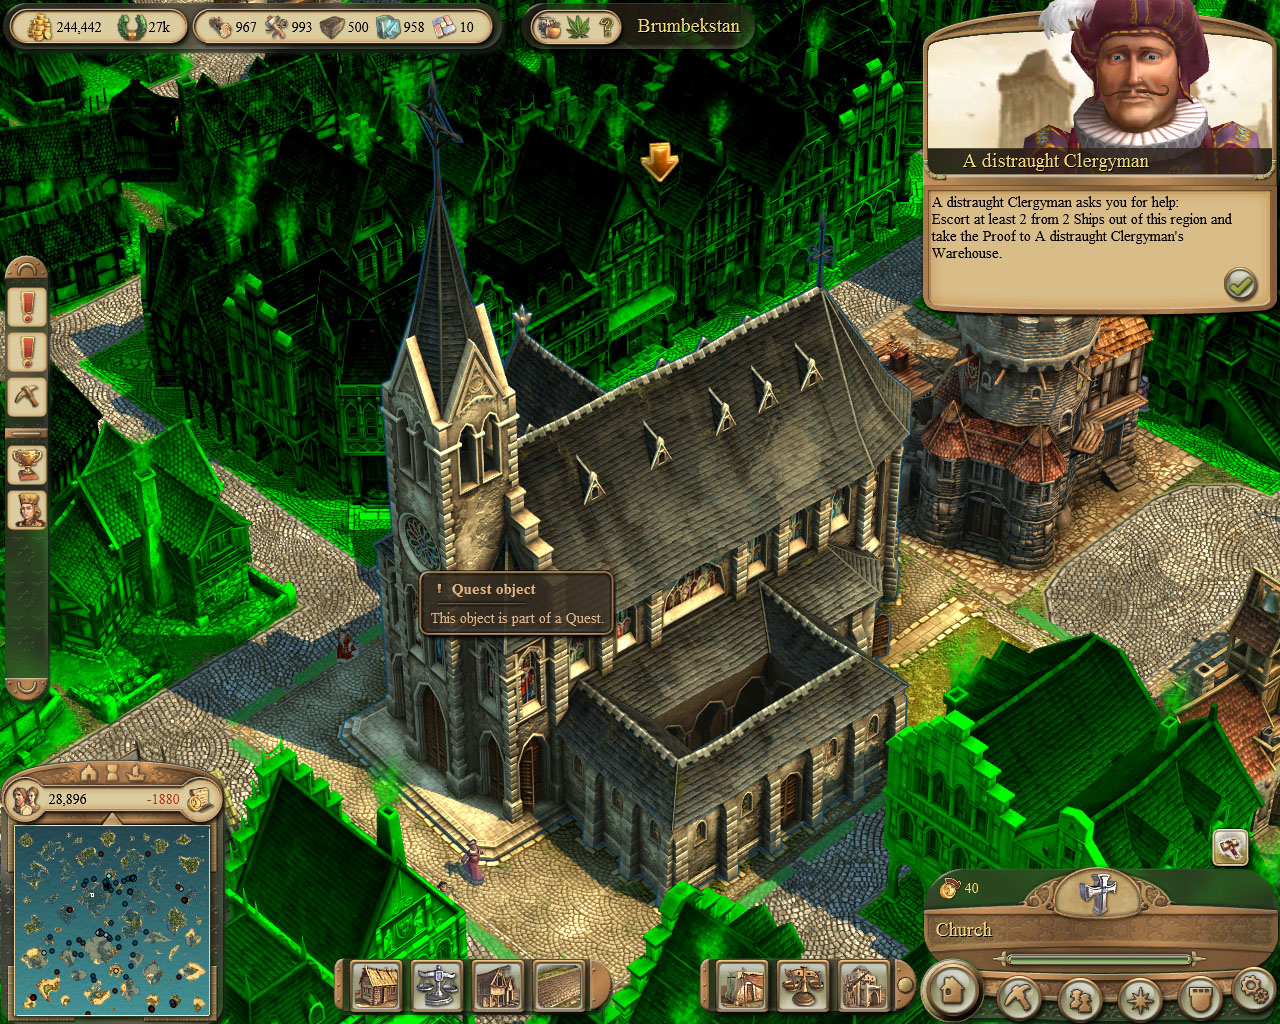 Quests anno 1404 wiki fandom powered by wikia gumiabroncs Image collections